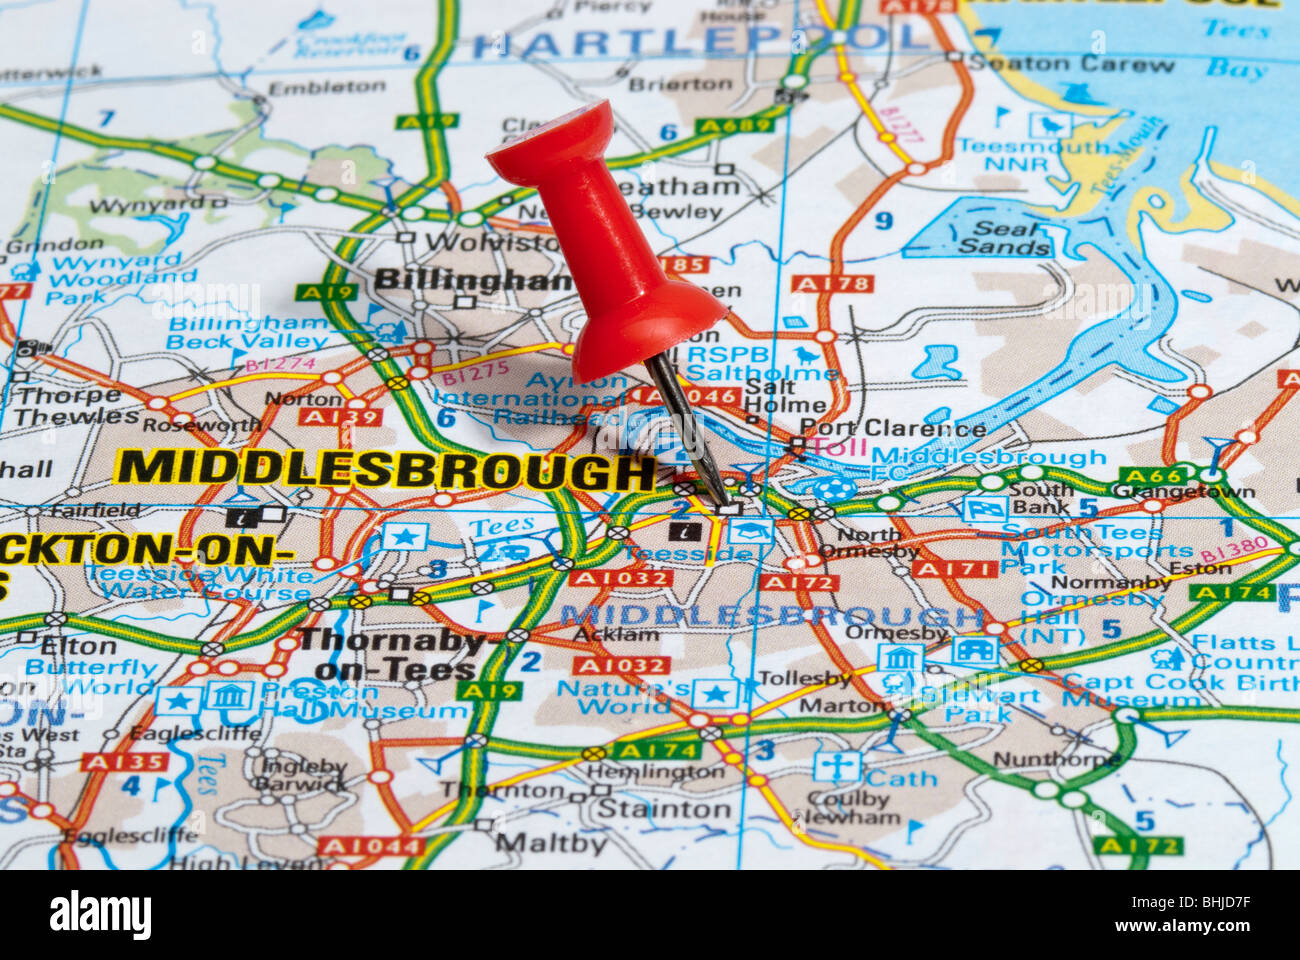 red map pin in road map pointing to city of Middlesbrough Stock